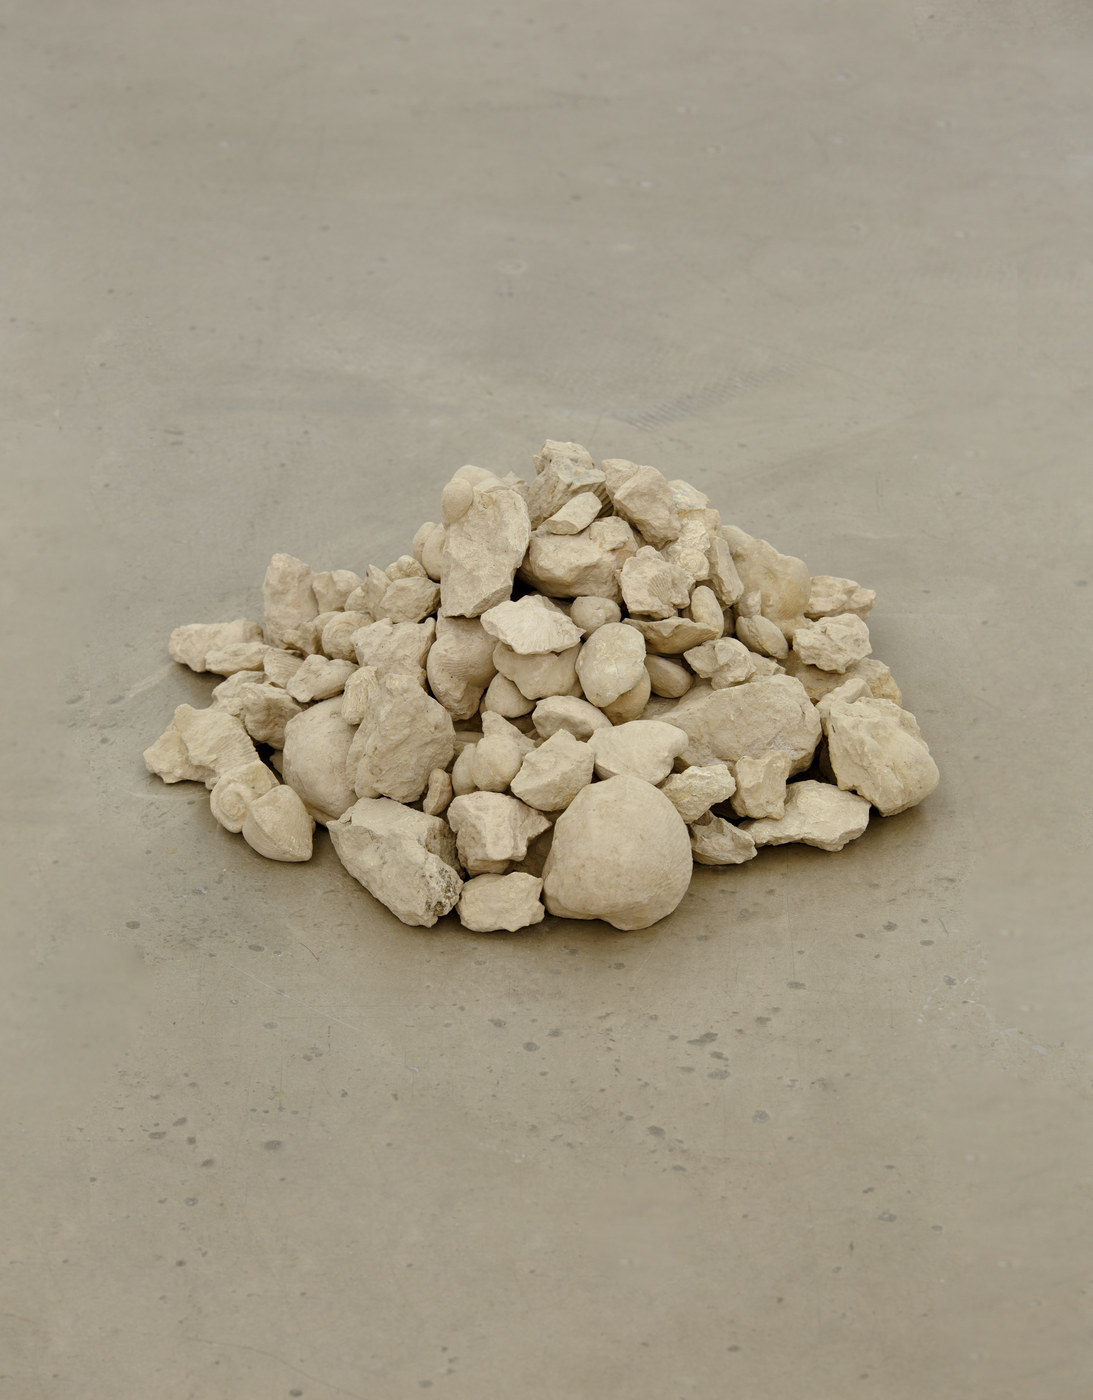 16. Larisa Sitar, Untitled, 2016 (collection of fossils, 50% real, 50% fake)